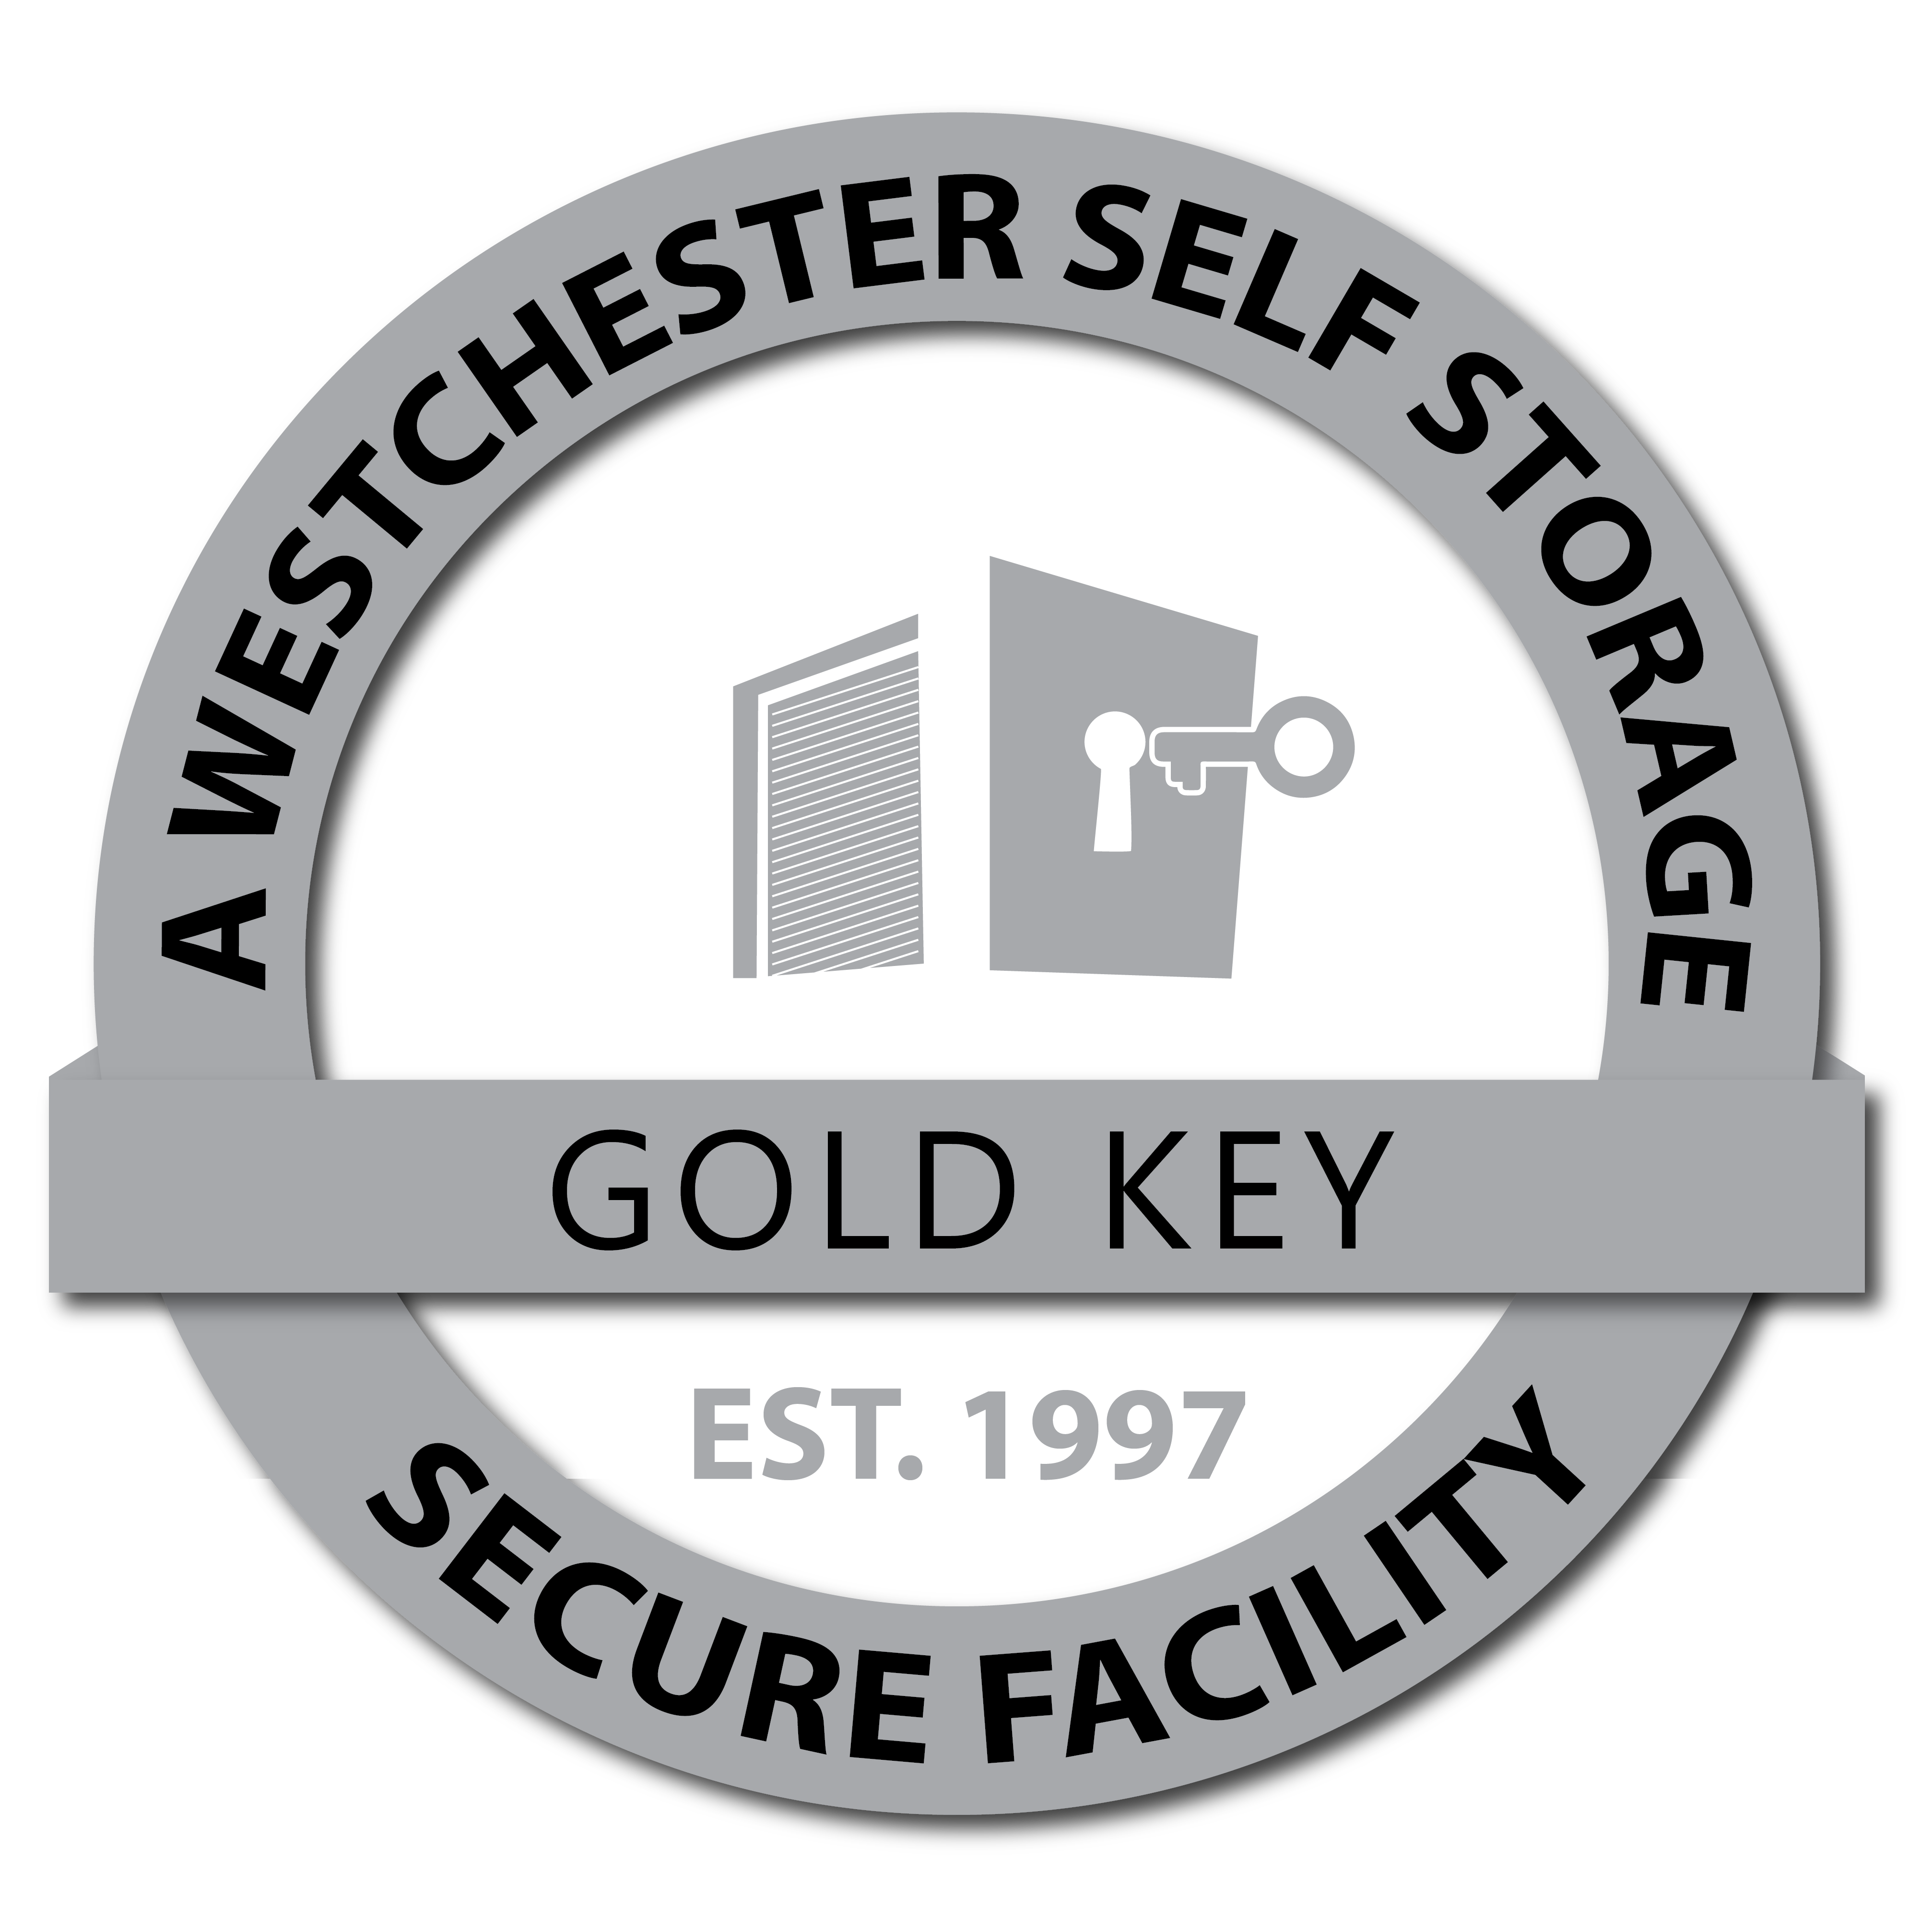 Westchester County NY Self Storage Locations logo